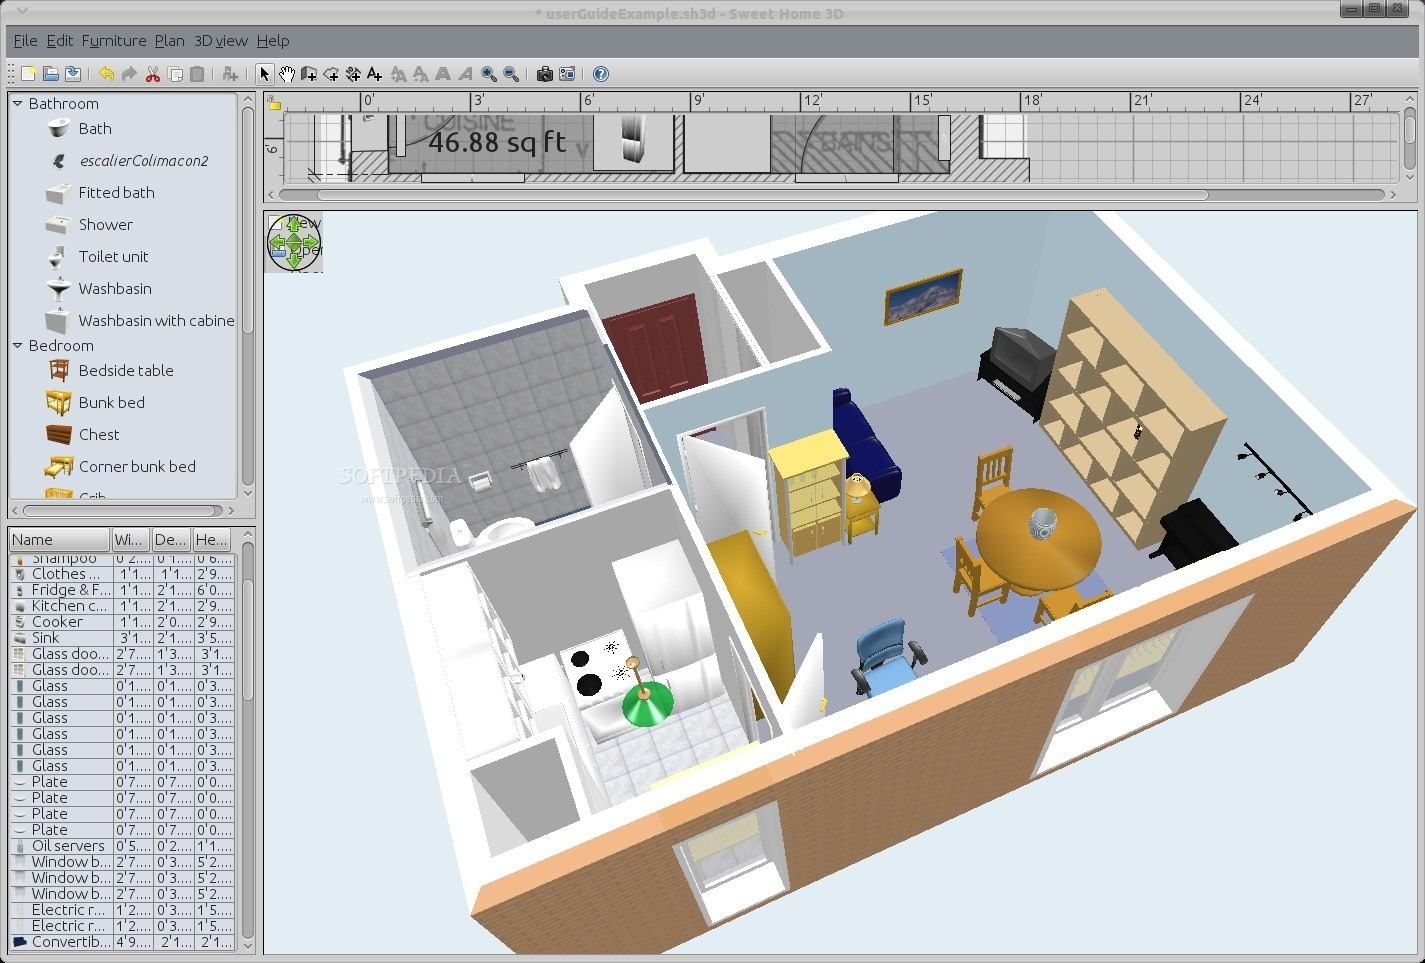 11 free and open source software for architecture or cad h2s media sweethome 3d malvernweather Image collections